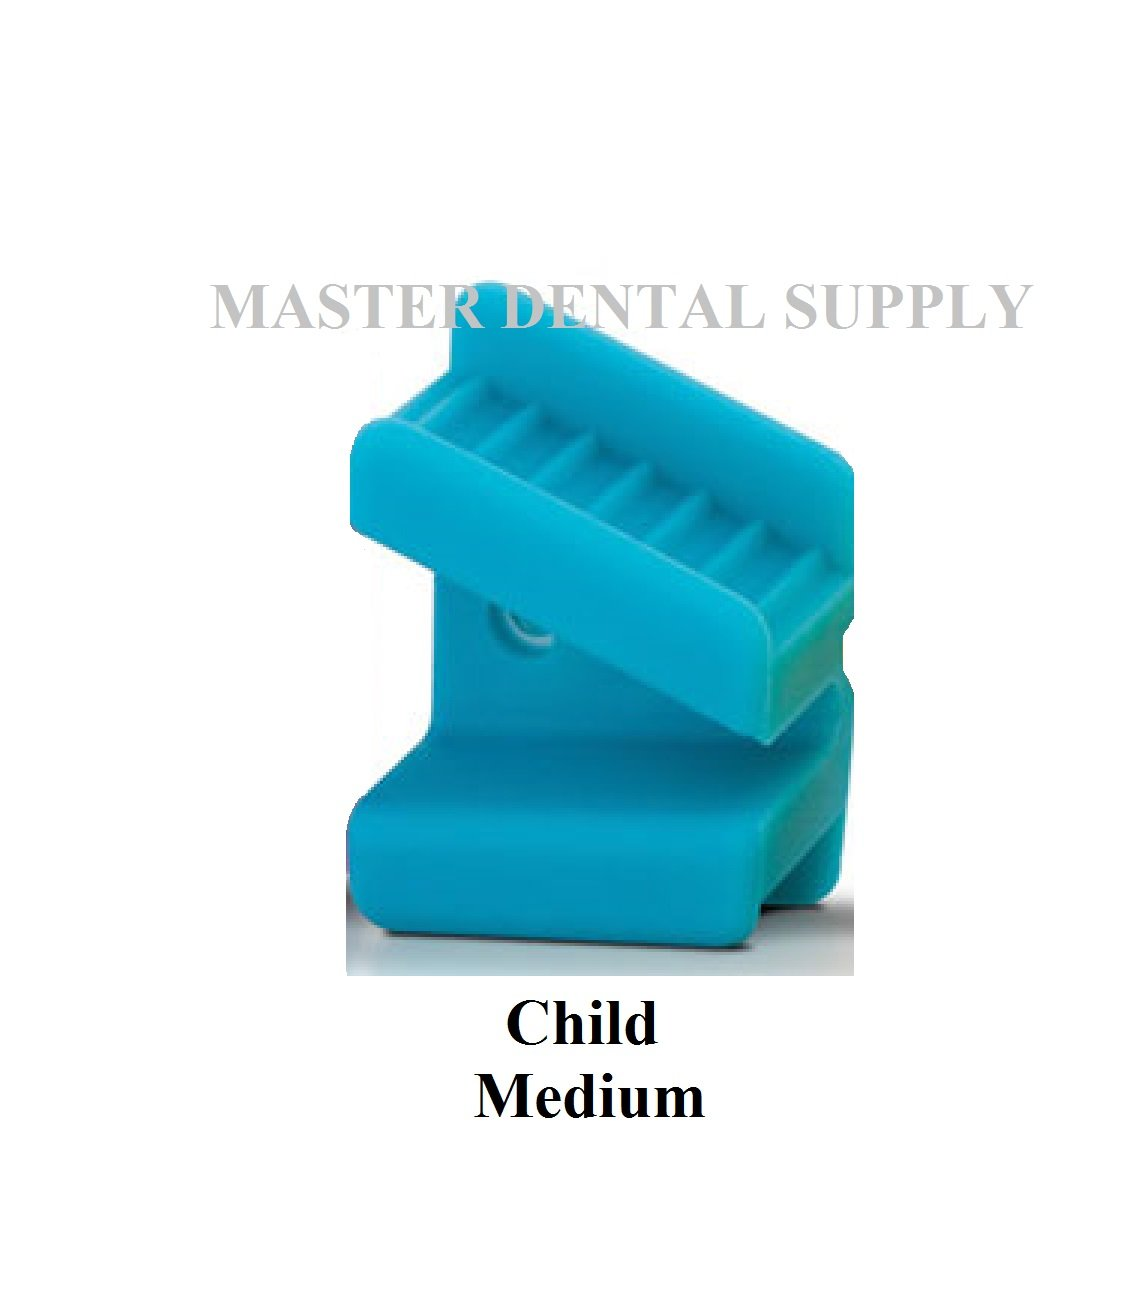 Dental Silicone Mouth Prop Bite Block 2 Pcs MEDIUM CHILD Turquoise Color Coded Autoclavable LATEX FREE